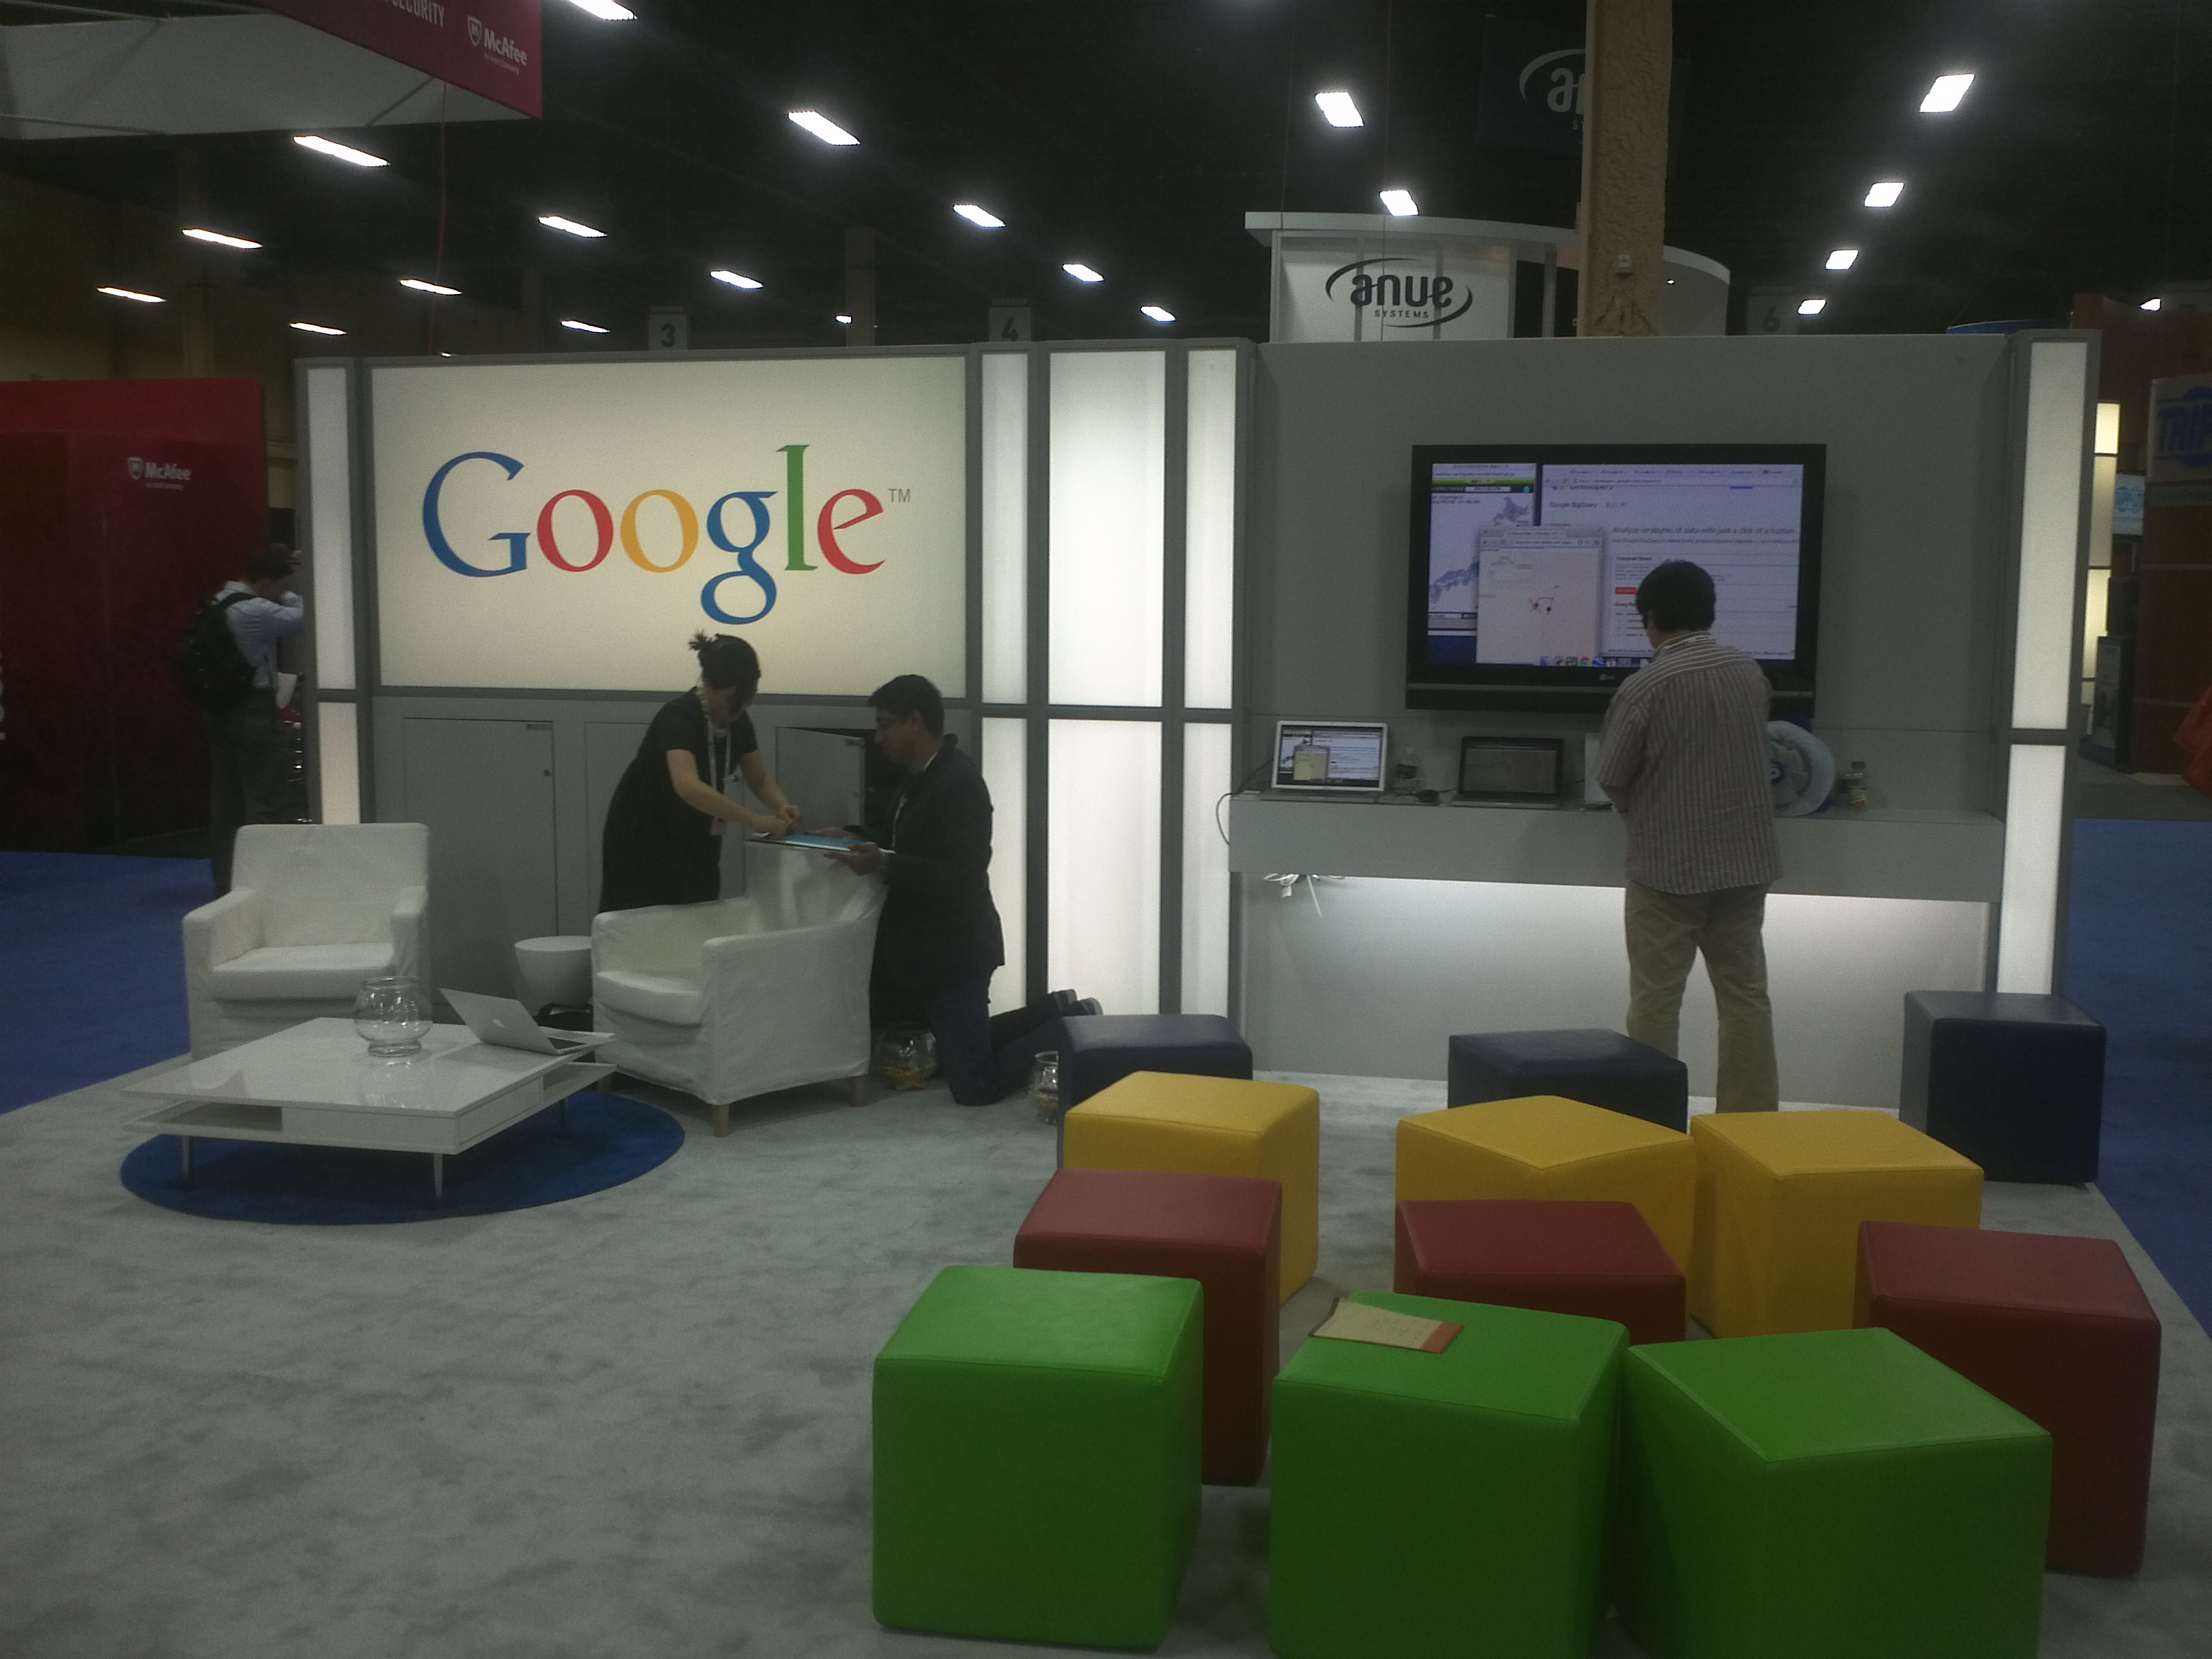 Google's minimalist booth at Interop.